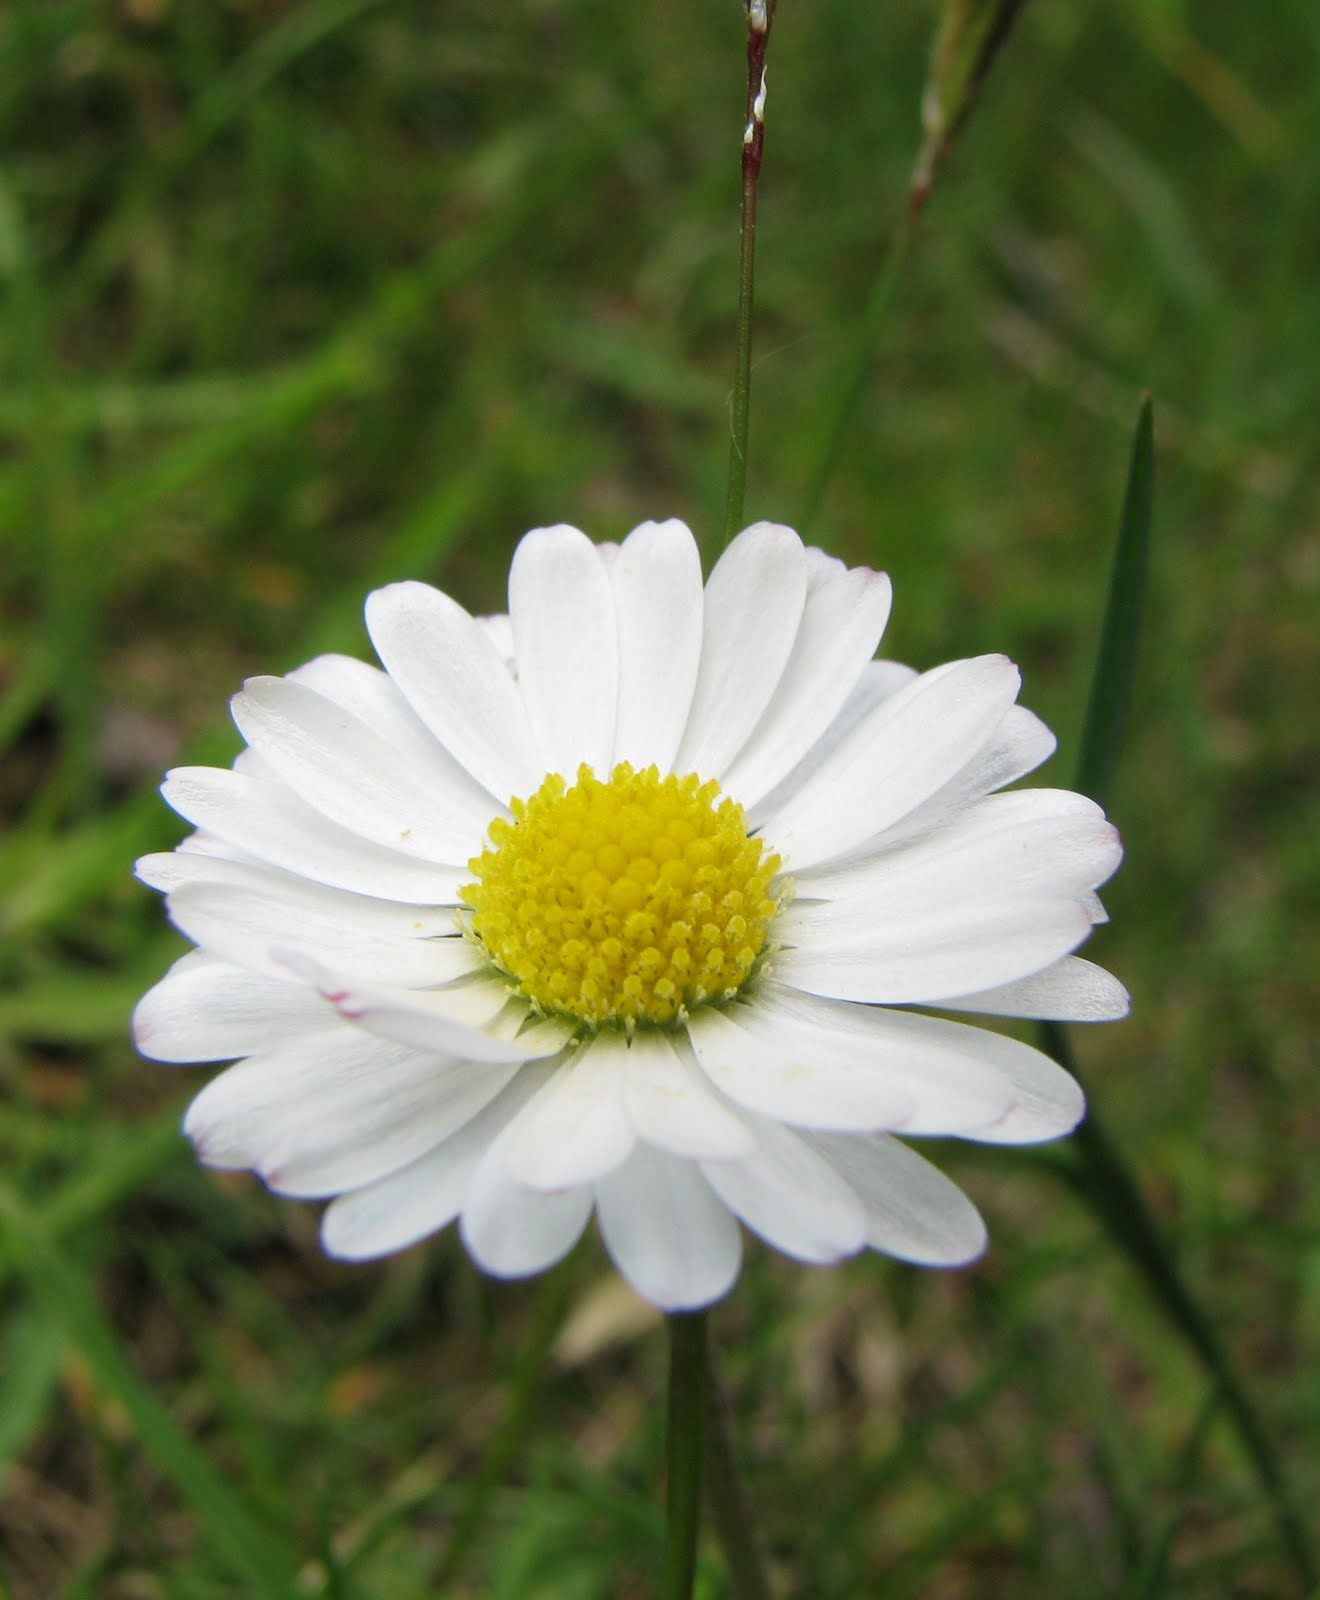 Wiggers world common daisy the daisy flower is considered a friendly one it has white petals with yellow centers sometimes the flowers are a rose or pink color izmirmasajfo